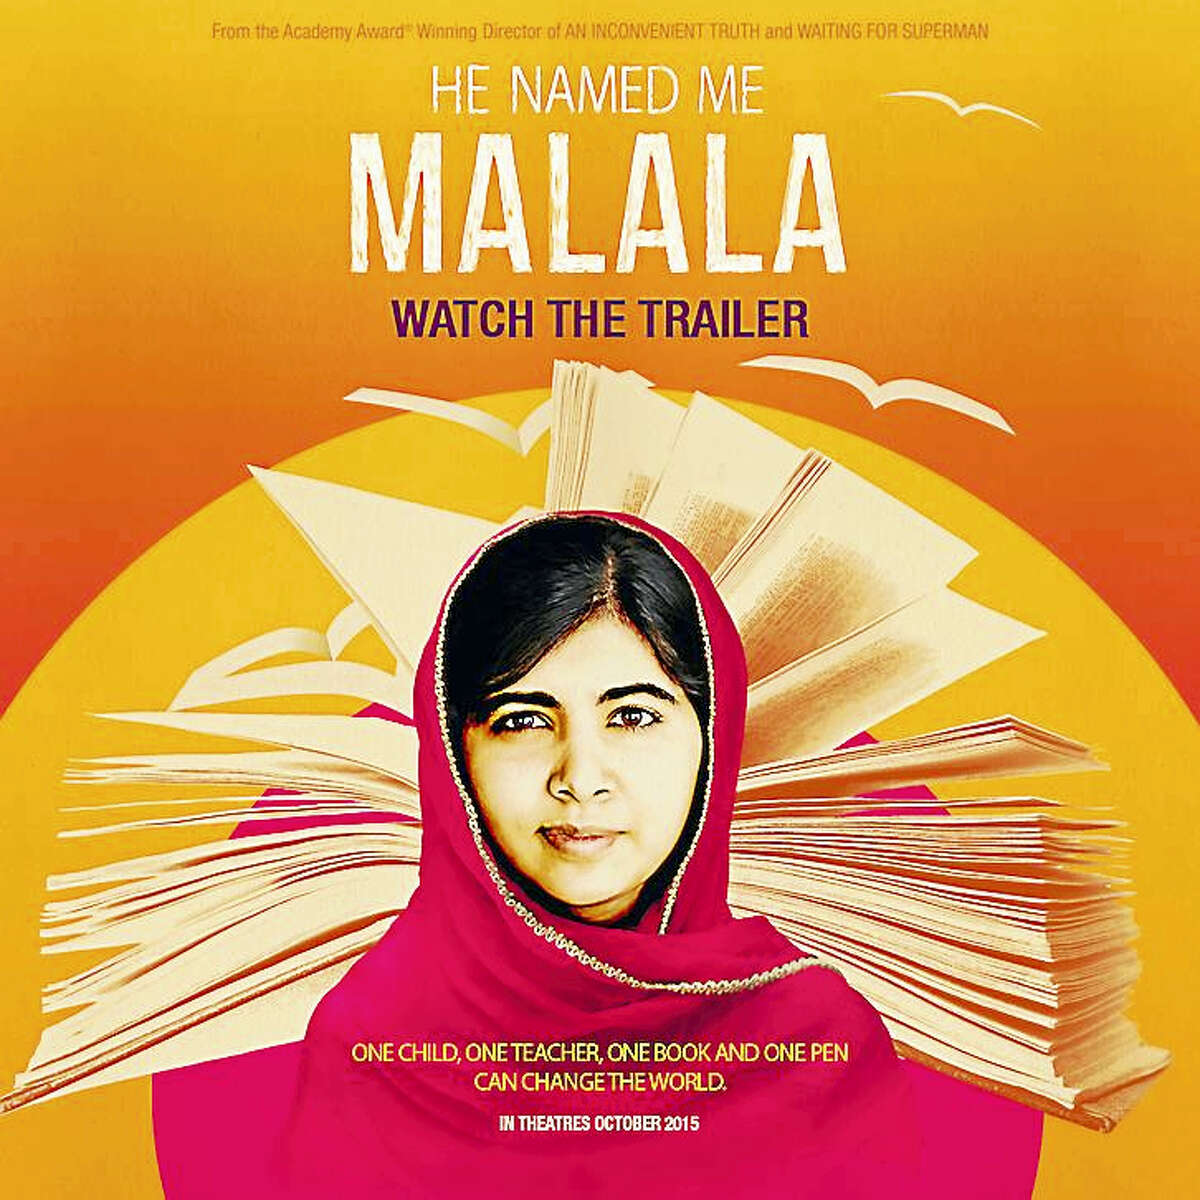 """Contributed photoESSEX: """"He Named Me Malala,"""" the story of Pakistani schoolgirl, Malala Yousafzai, who advocates for girls' education, will be screened for free at 2 p.m. Feb. 27 at the Essex Library, 33 West Ave. Yousafzai is the youngest winner of the Nobel Peace Prize. The event is part of the series """"Uncommon Heroes,"""" which will present films and speakers celebrating women working to improve the lives of others. RSVP: 860-767-1560."""